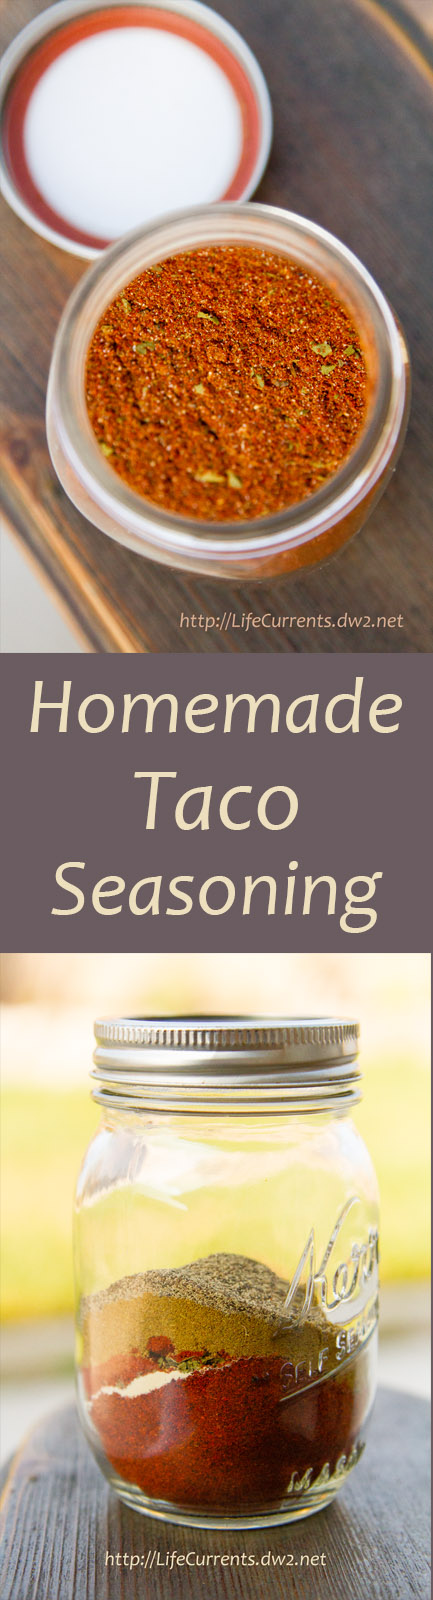 This Taco Seasoning is ahhh-mazing. It smells so deep and rich. So full of flavor. And, I left the salt out entirely.